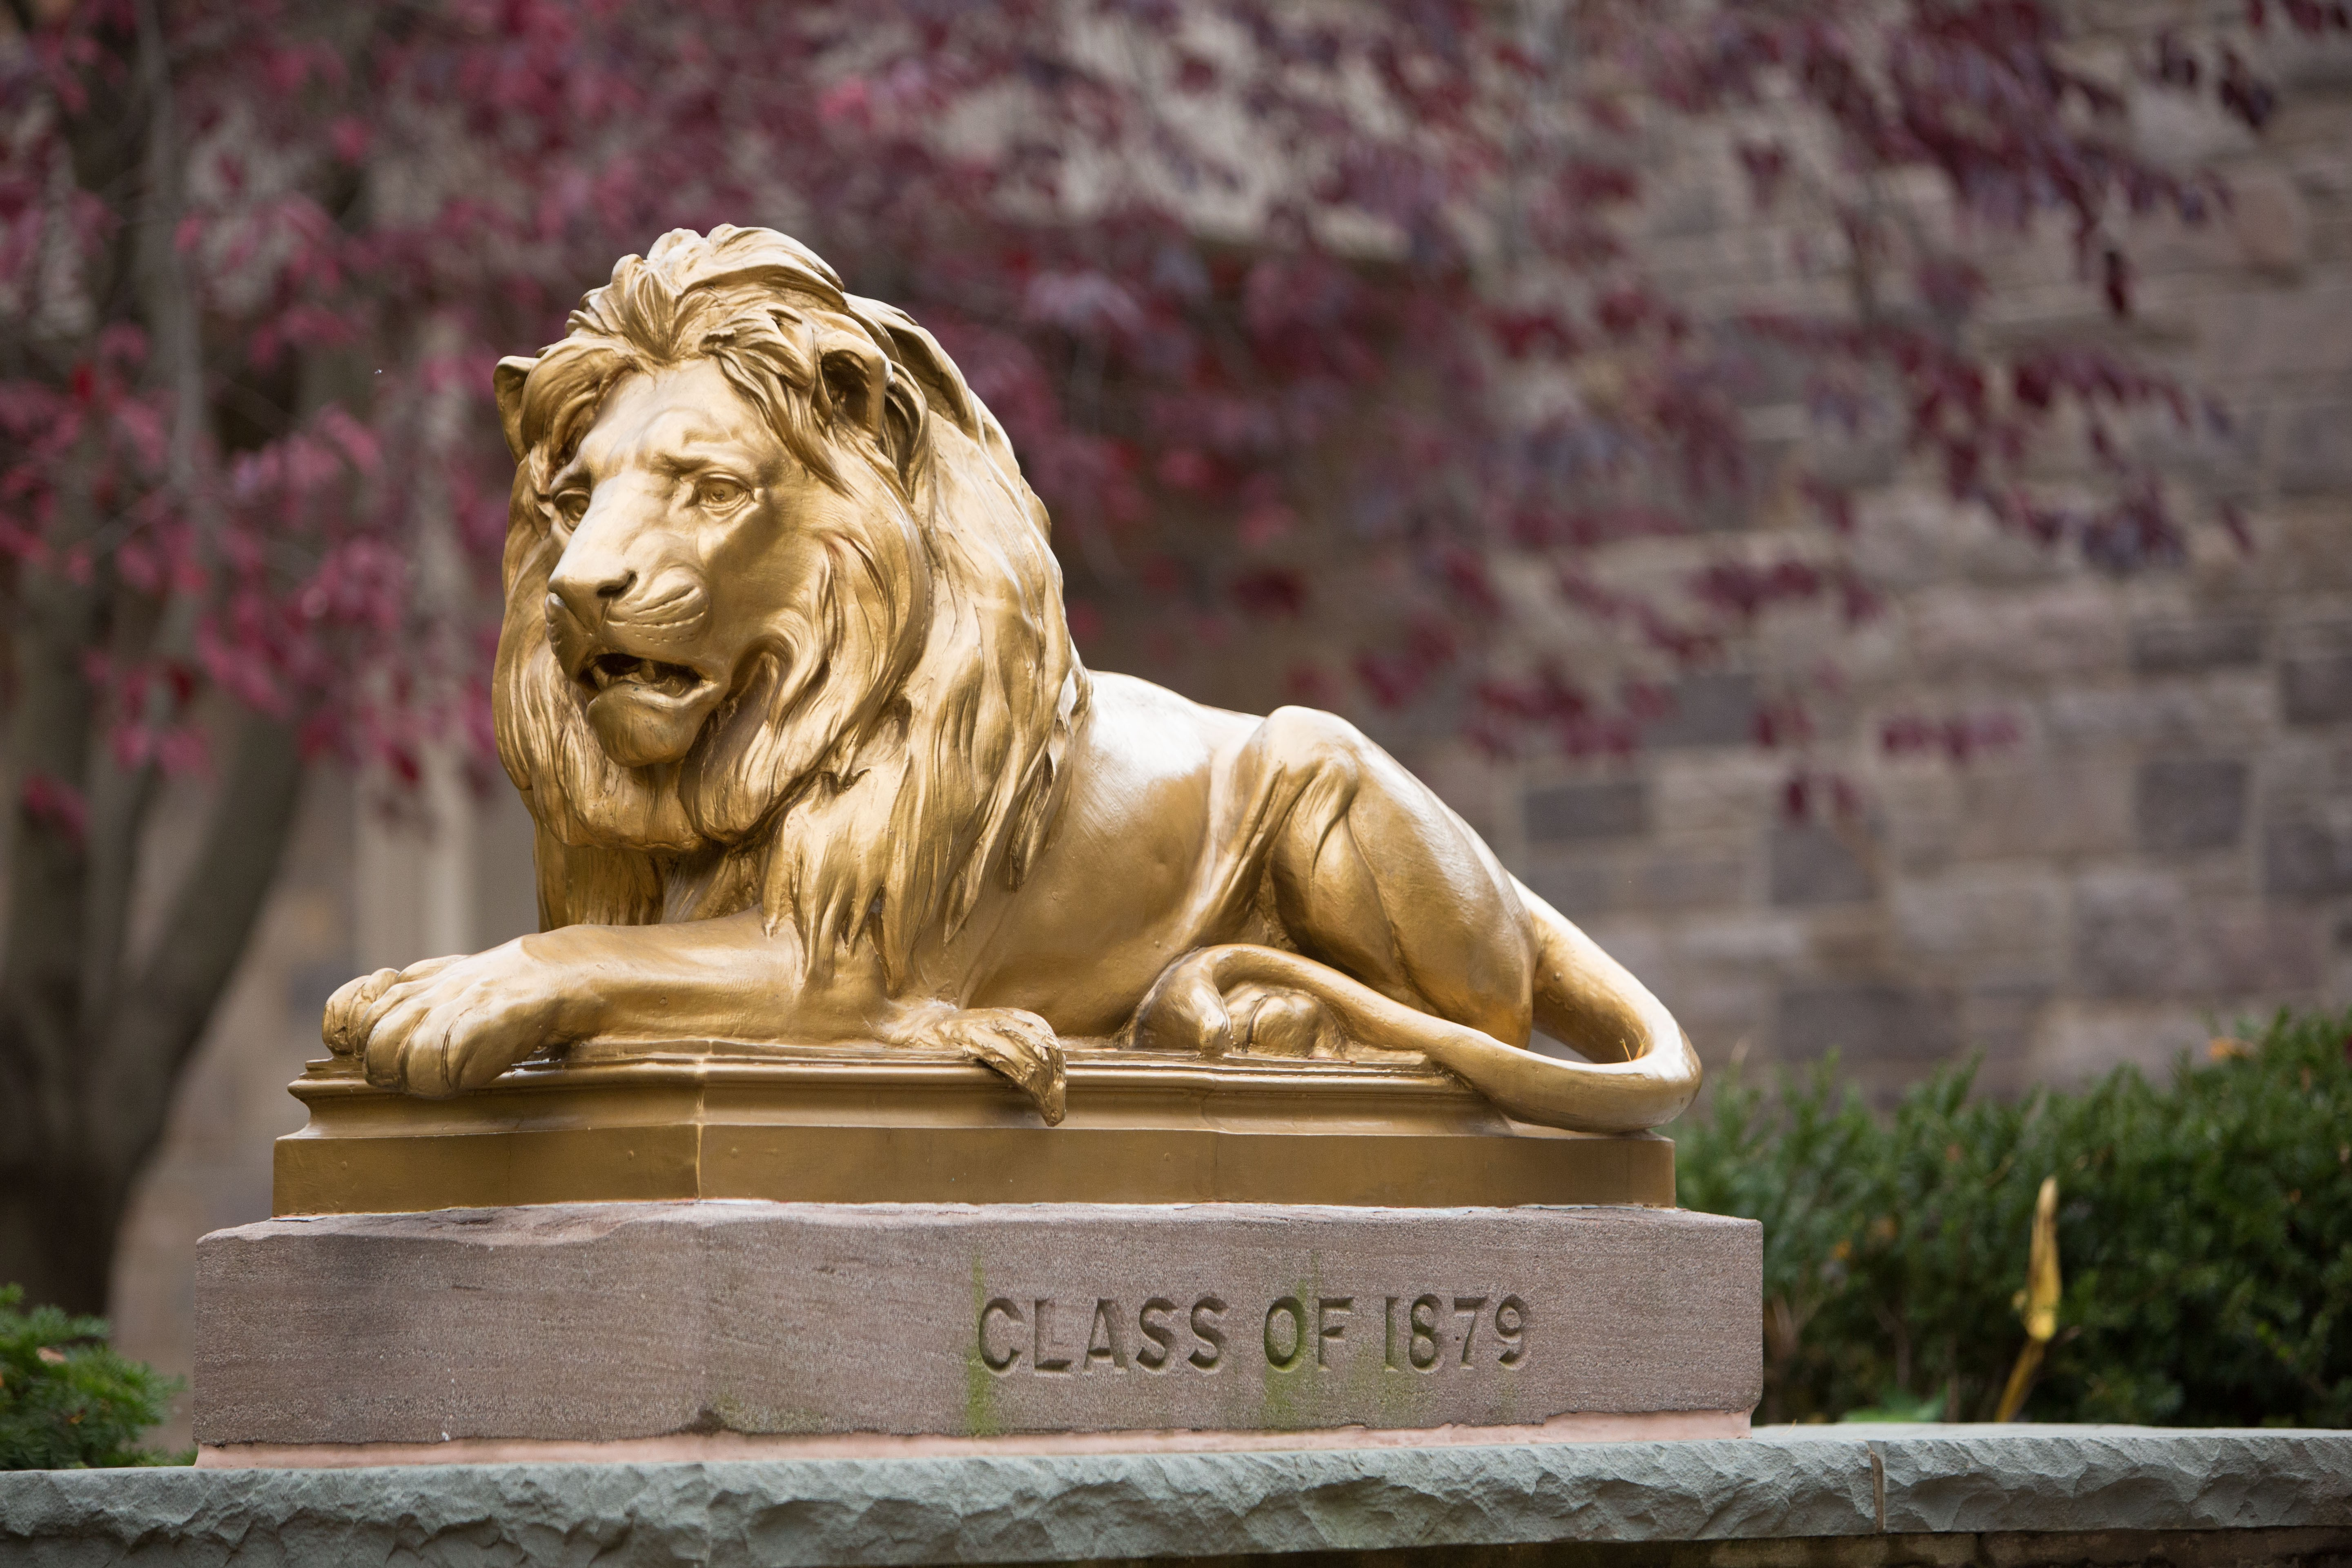 Class of 1879 lions